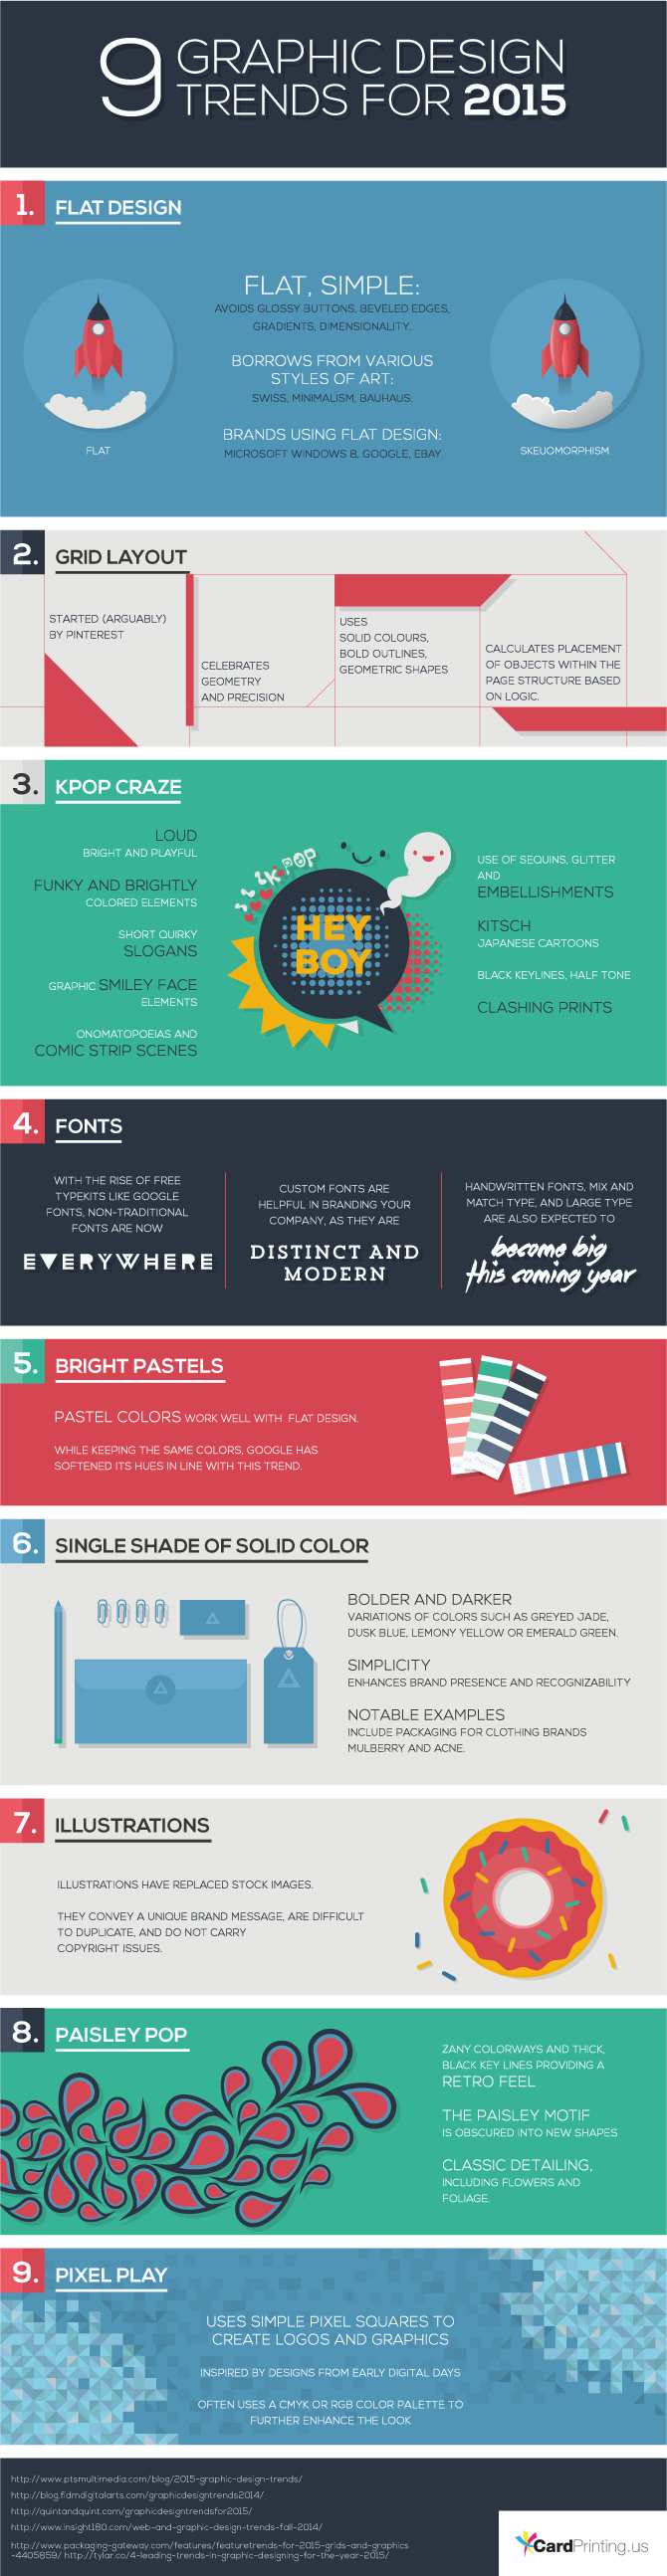 9 Graphic Design Trends for 2015 – #infographic